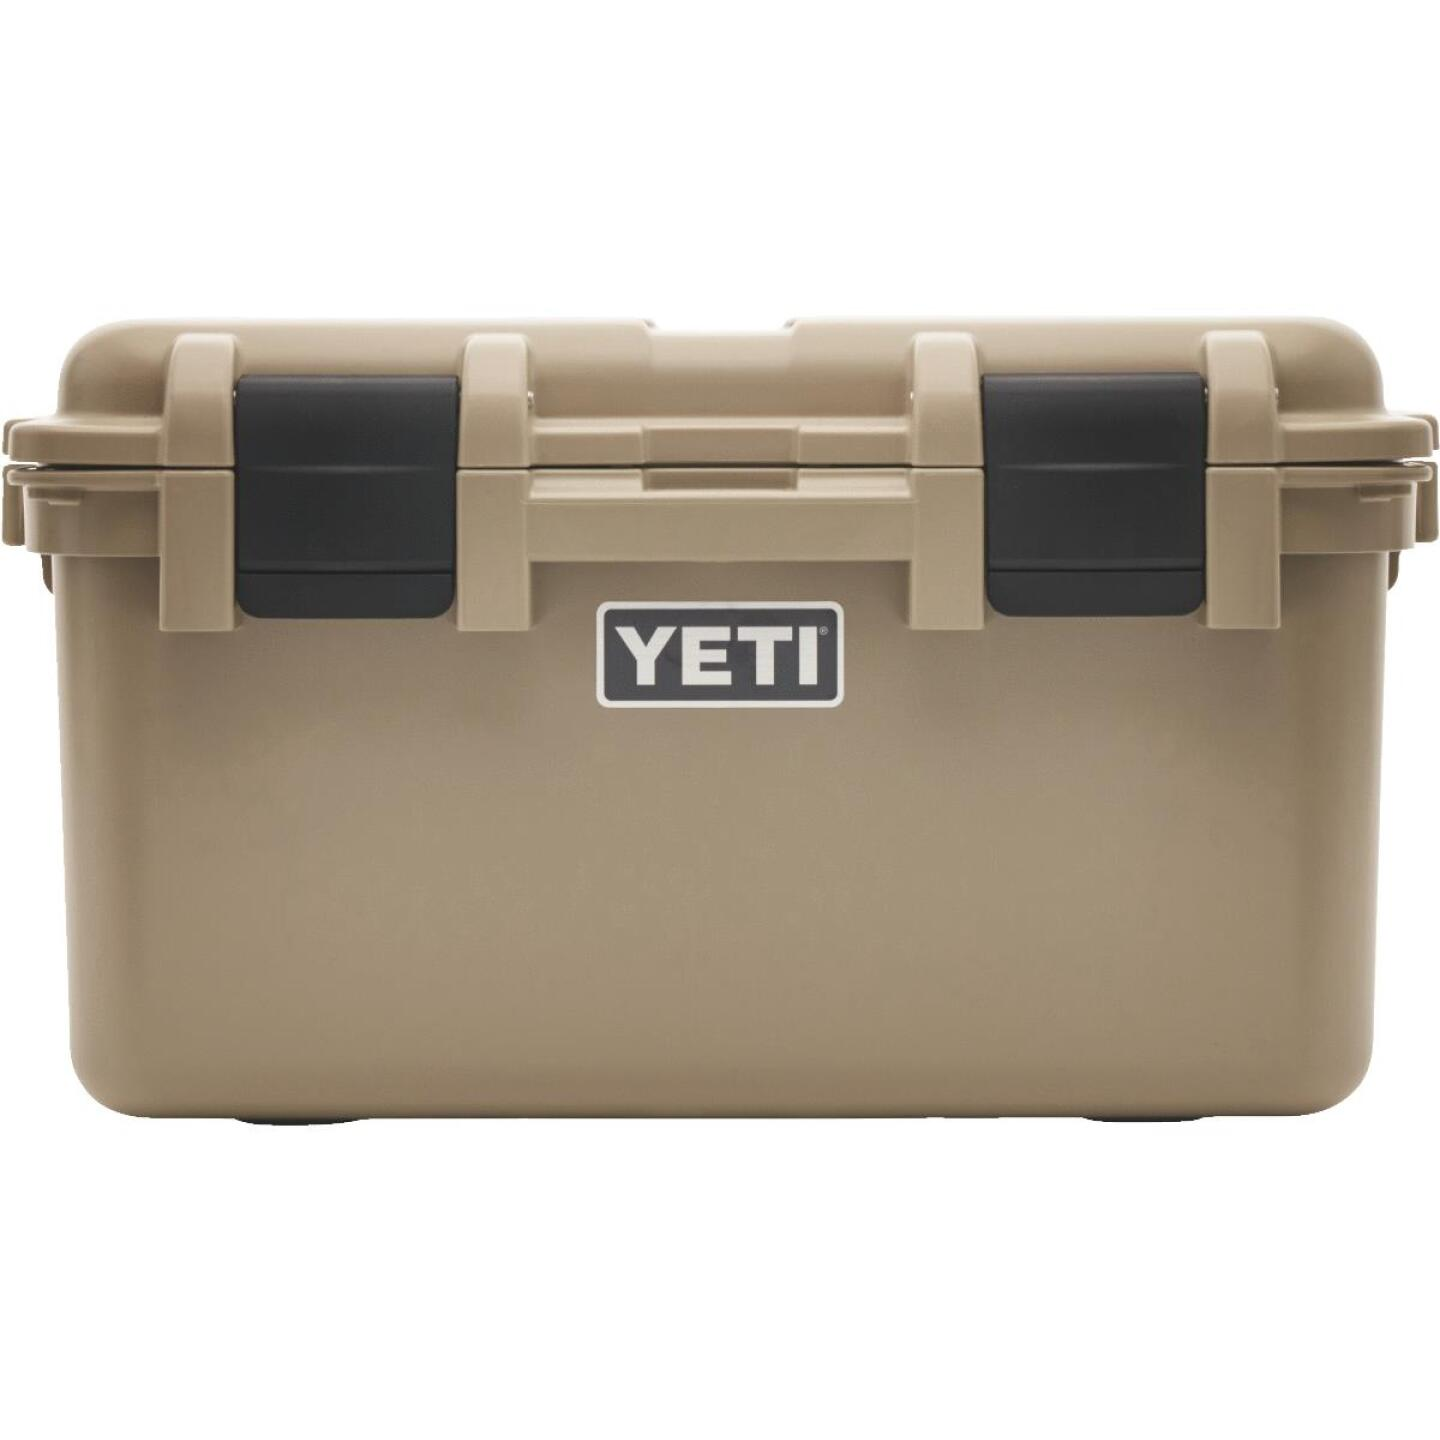 Yeti LoadOut GoBox 30 14.7 In. W. x 11.19 In. H. x 20.58 In. L. Tan Tote Image 1